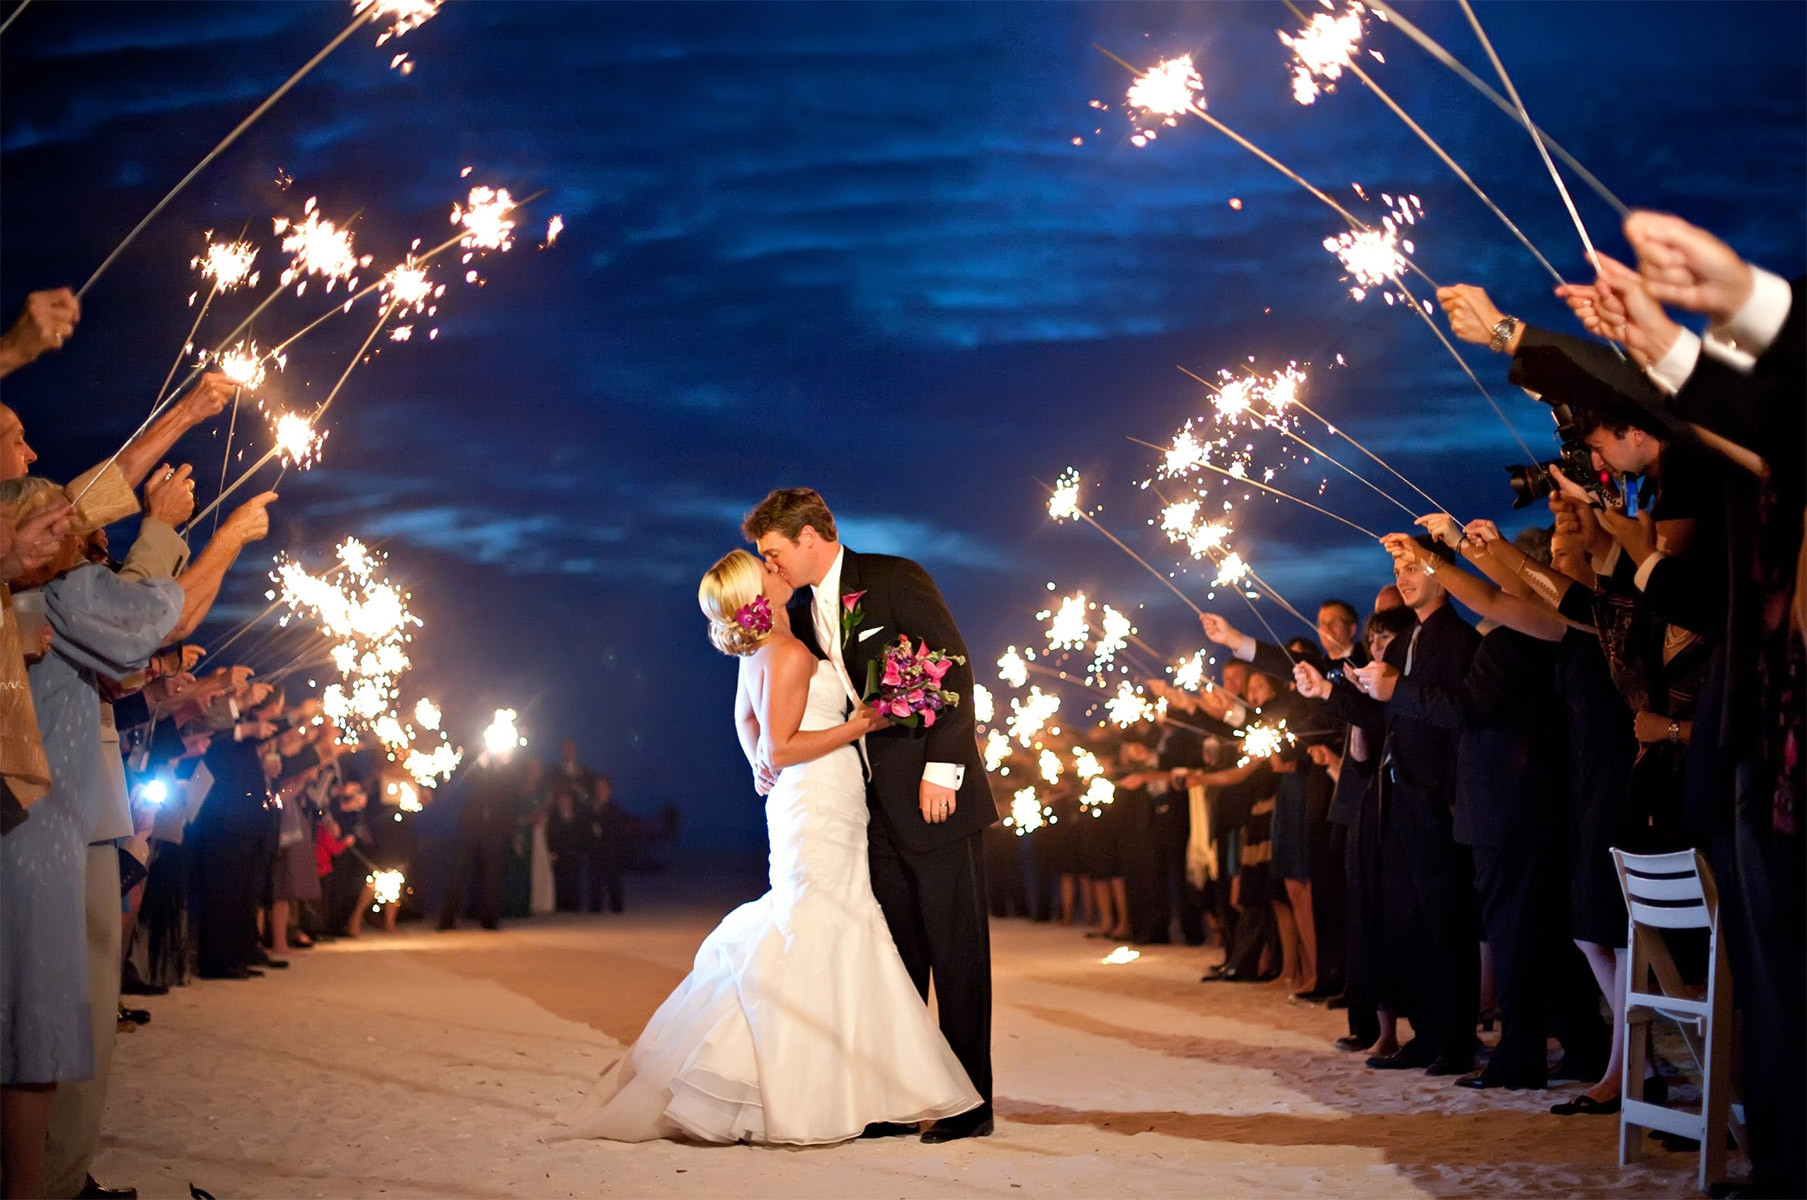 Sparkler Wedding Photos  Using Sparklers for Your Wedding Exit Send f A